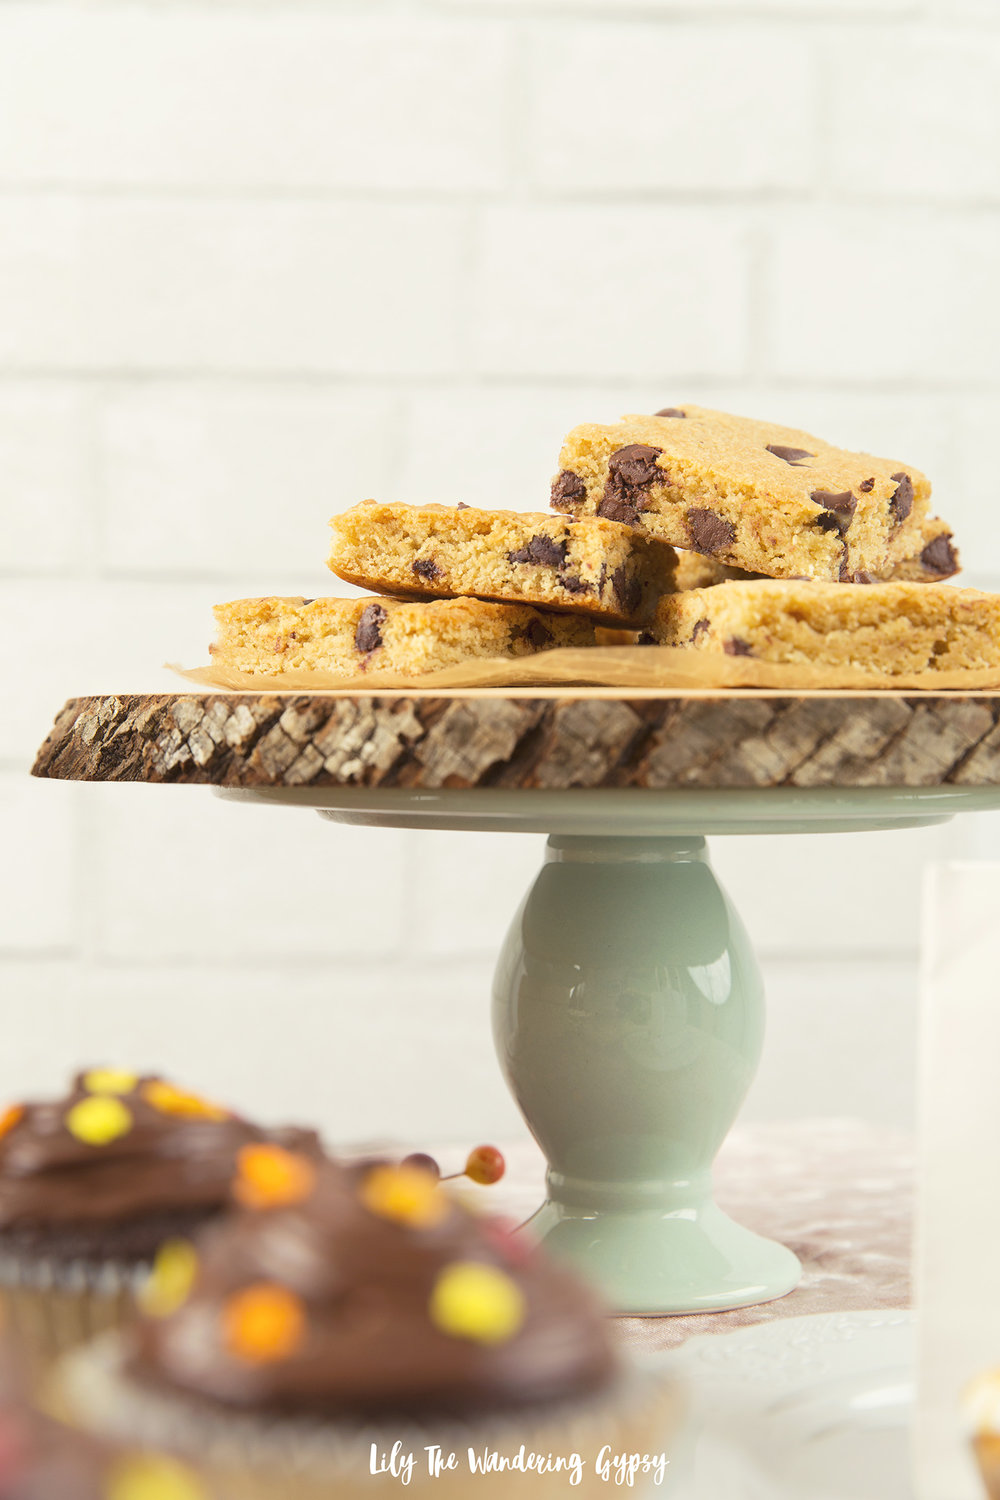 Chocolate Chip Cookie Bars on Mint Cake Stand